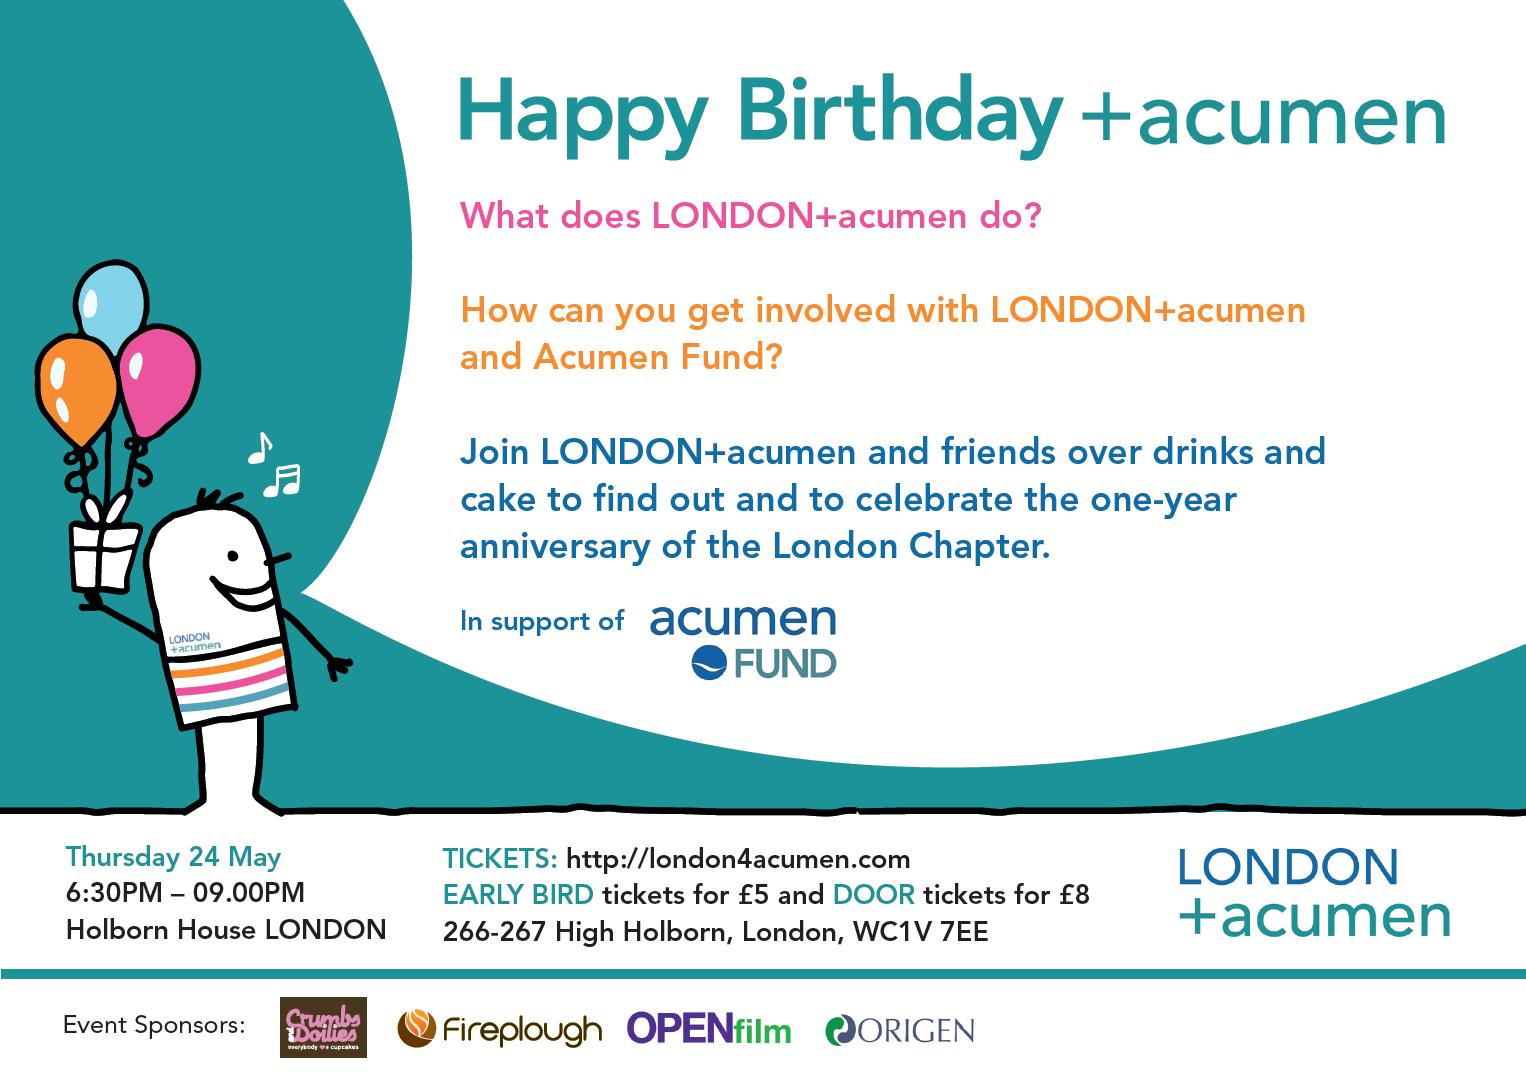 Happy Birthday LONDON+acumen